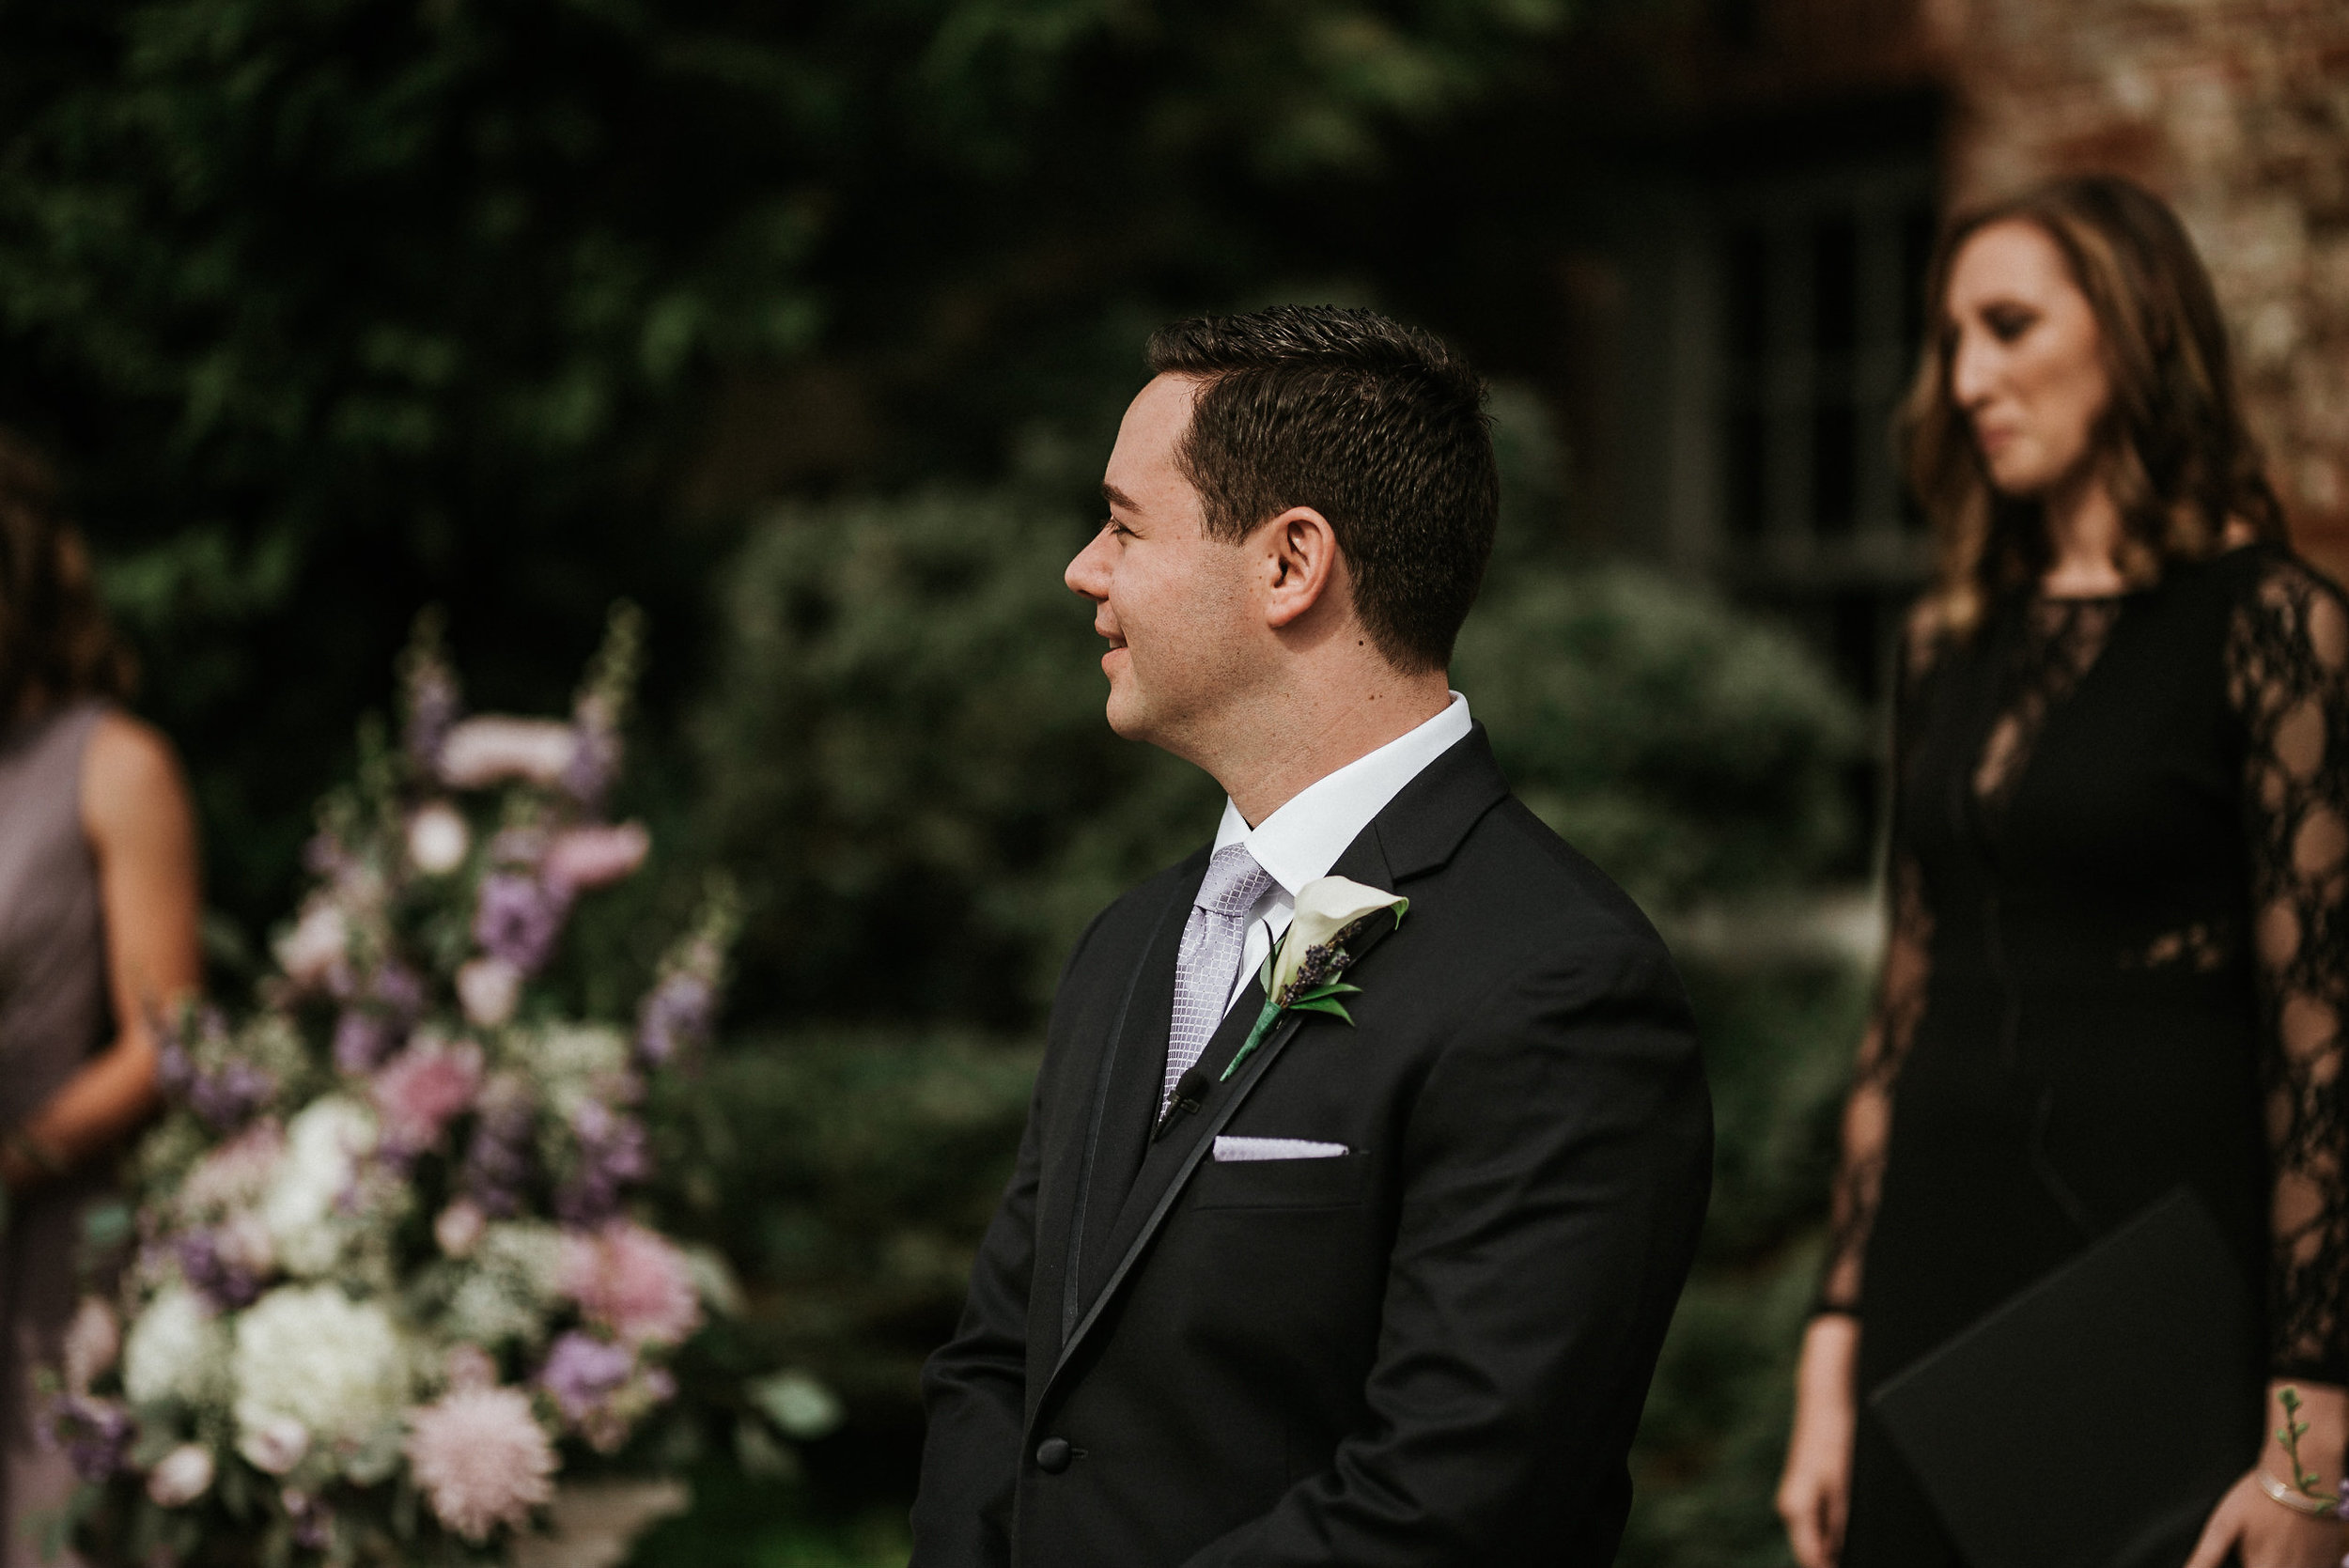 Groom standing at front of aisle during ceremony